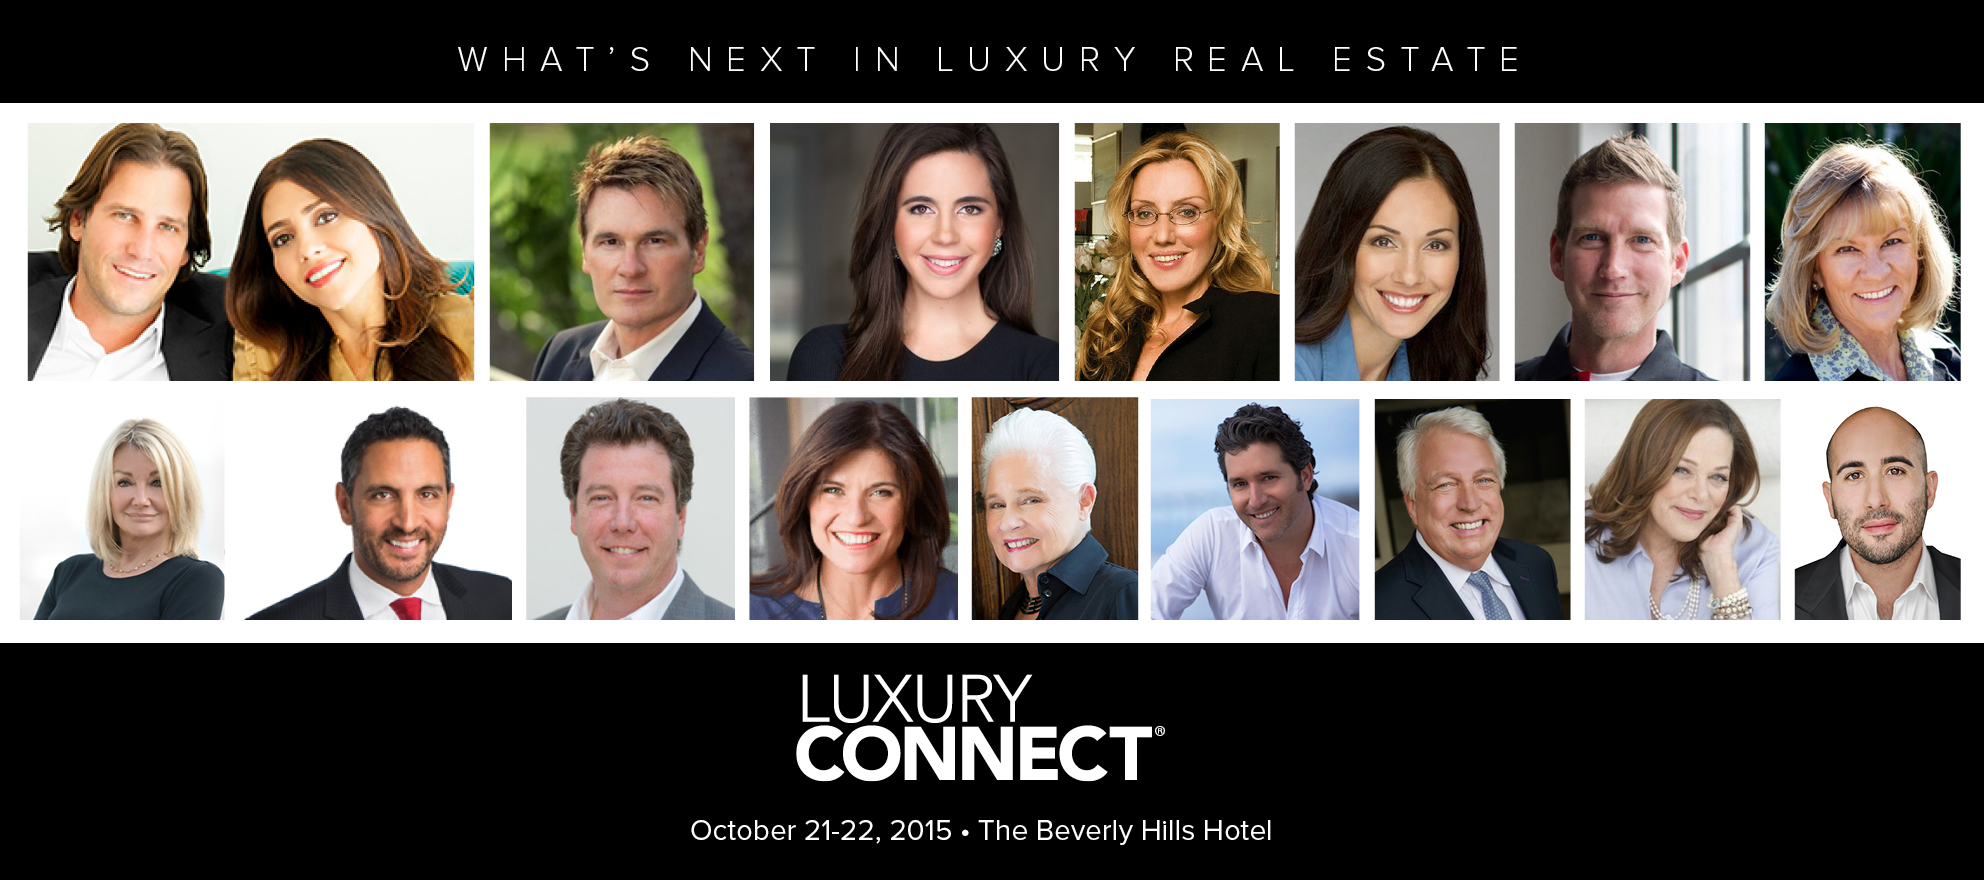 Luxury's rock stars, legends come together to define what's next